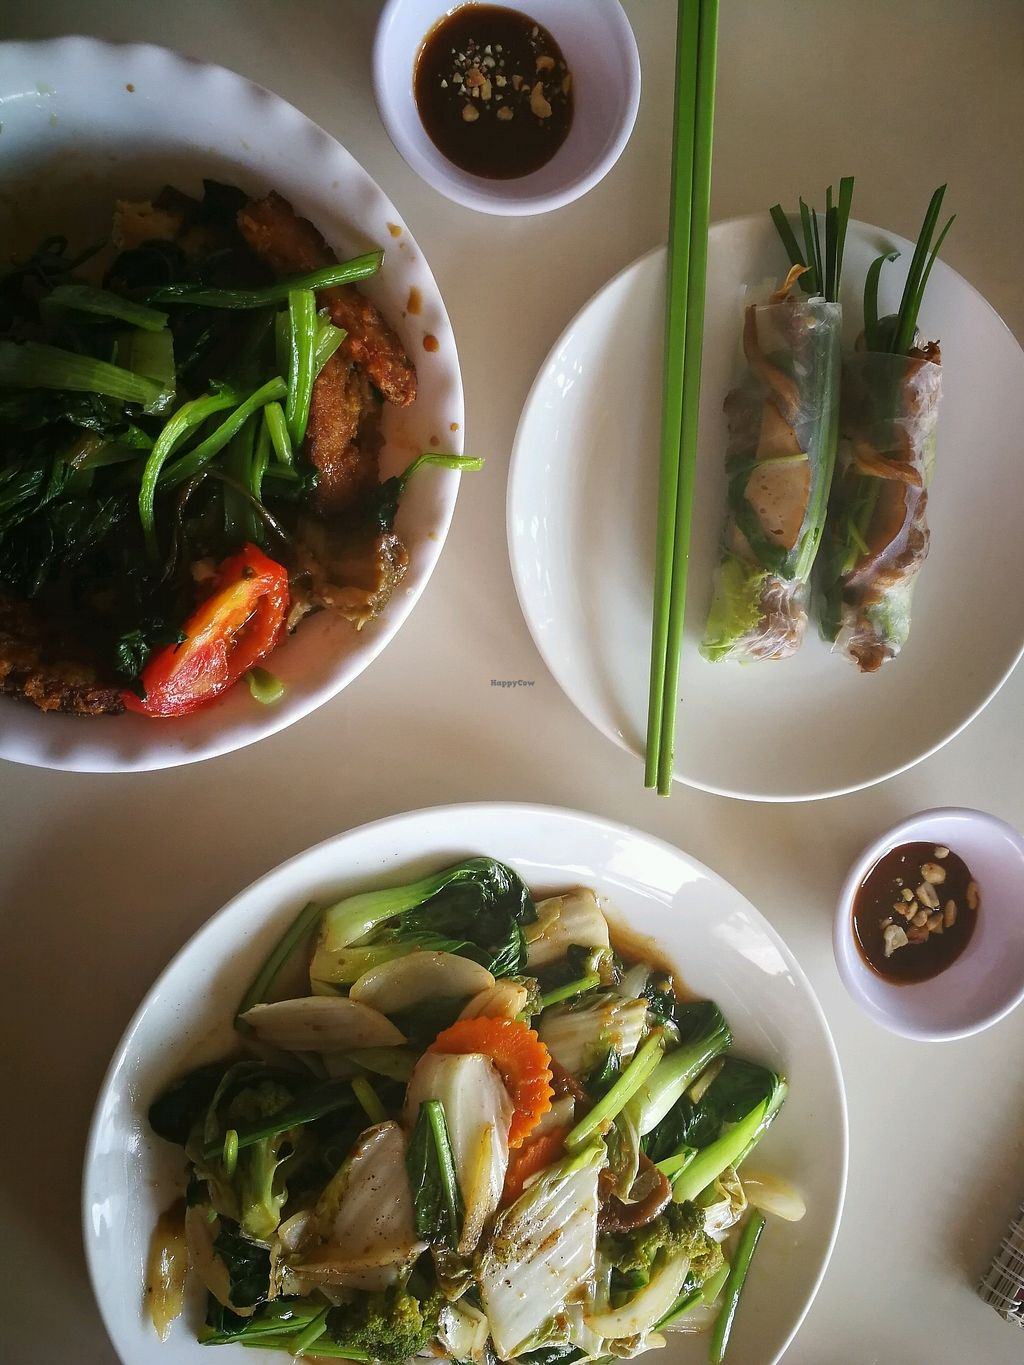 """Photo of Thien Cung - Loving Hut  by <a href=""""/members/profile/Yoanne"""">Yoanne</a> <br/>buffet, springrolls and fried sate noodles <br/> April 5, 2018  - <a href='/contact/abuse/image/100280/380977'>Report</a>"""